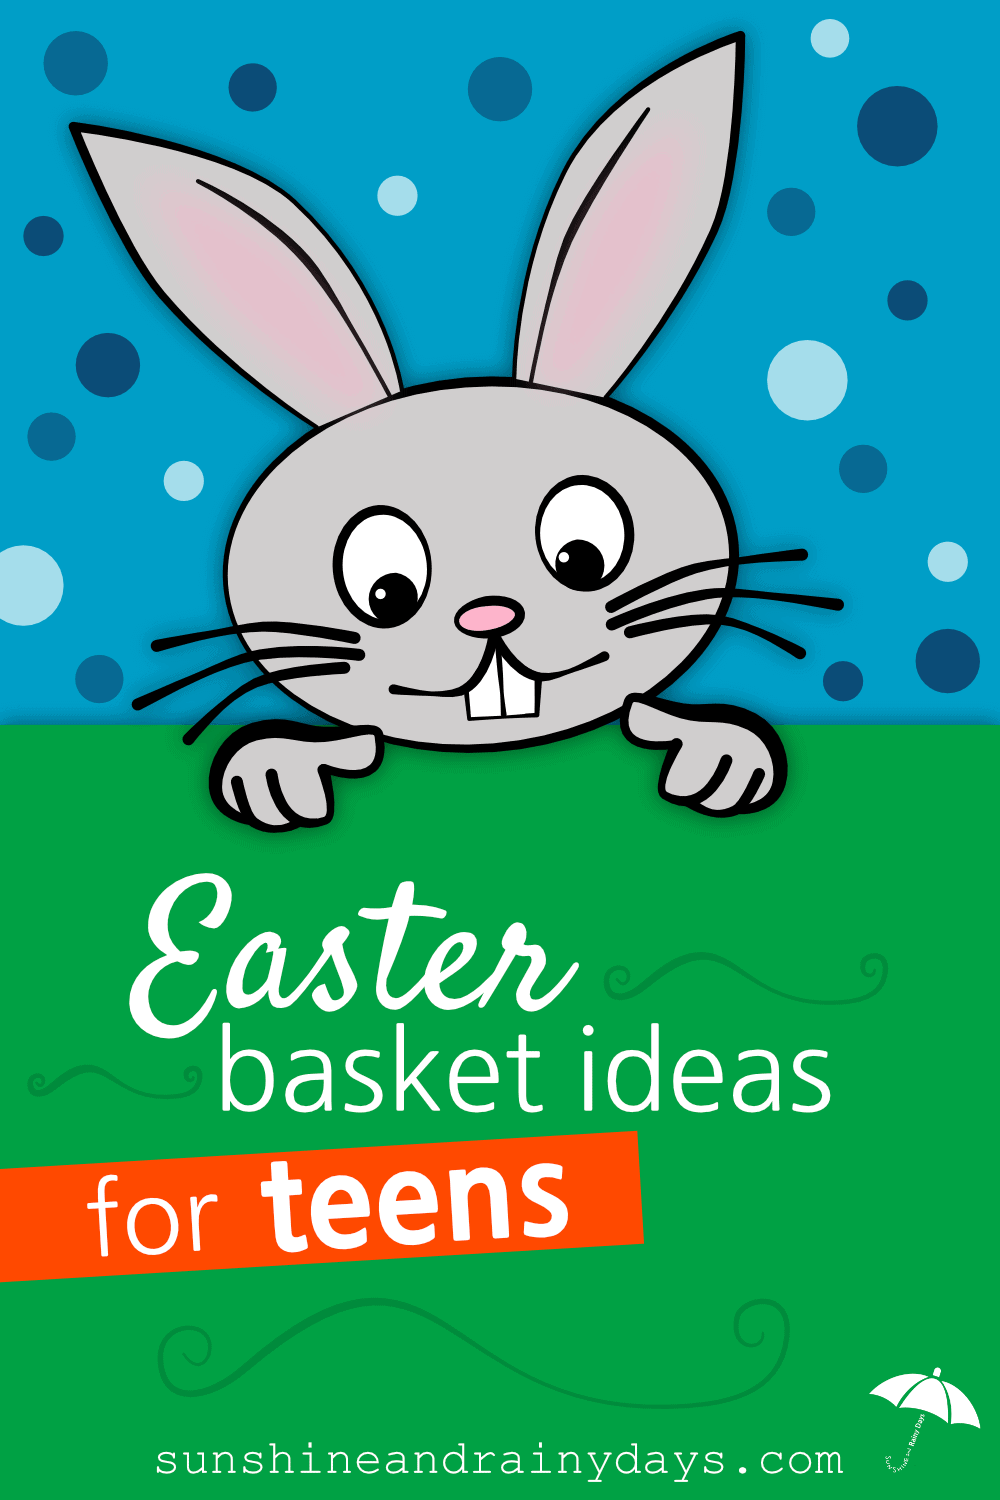 Visions of the Easter Bunny hopping around the yard may be long gone for our teenagers but Easter For Teens is still a lot of fun! What should you put in Easter Baskets For Teens? We are here to help with eight different Easter Basket ideas!